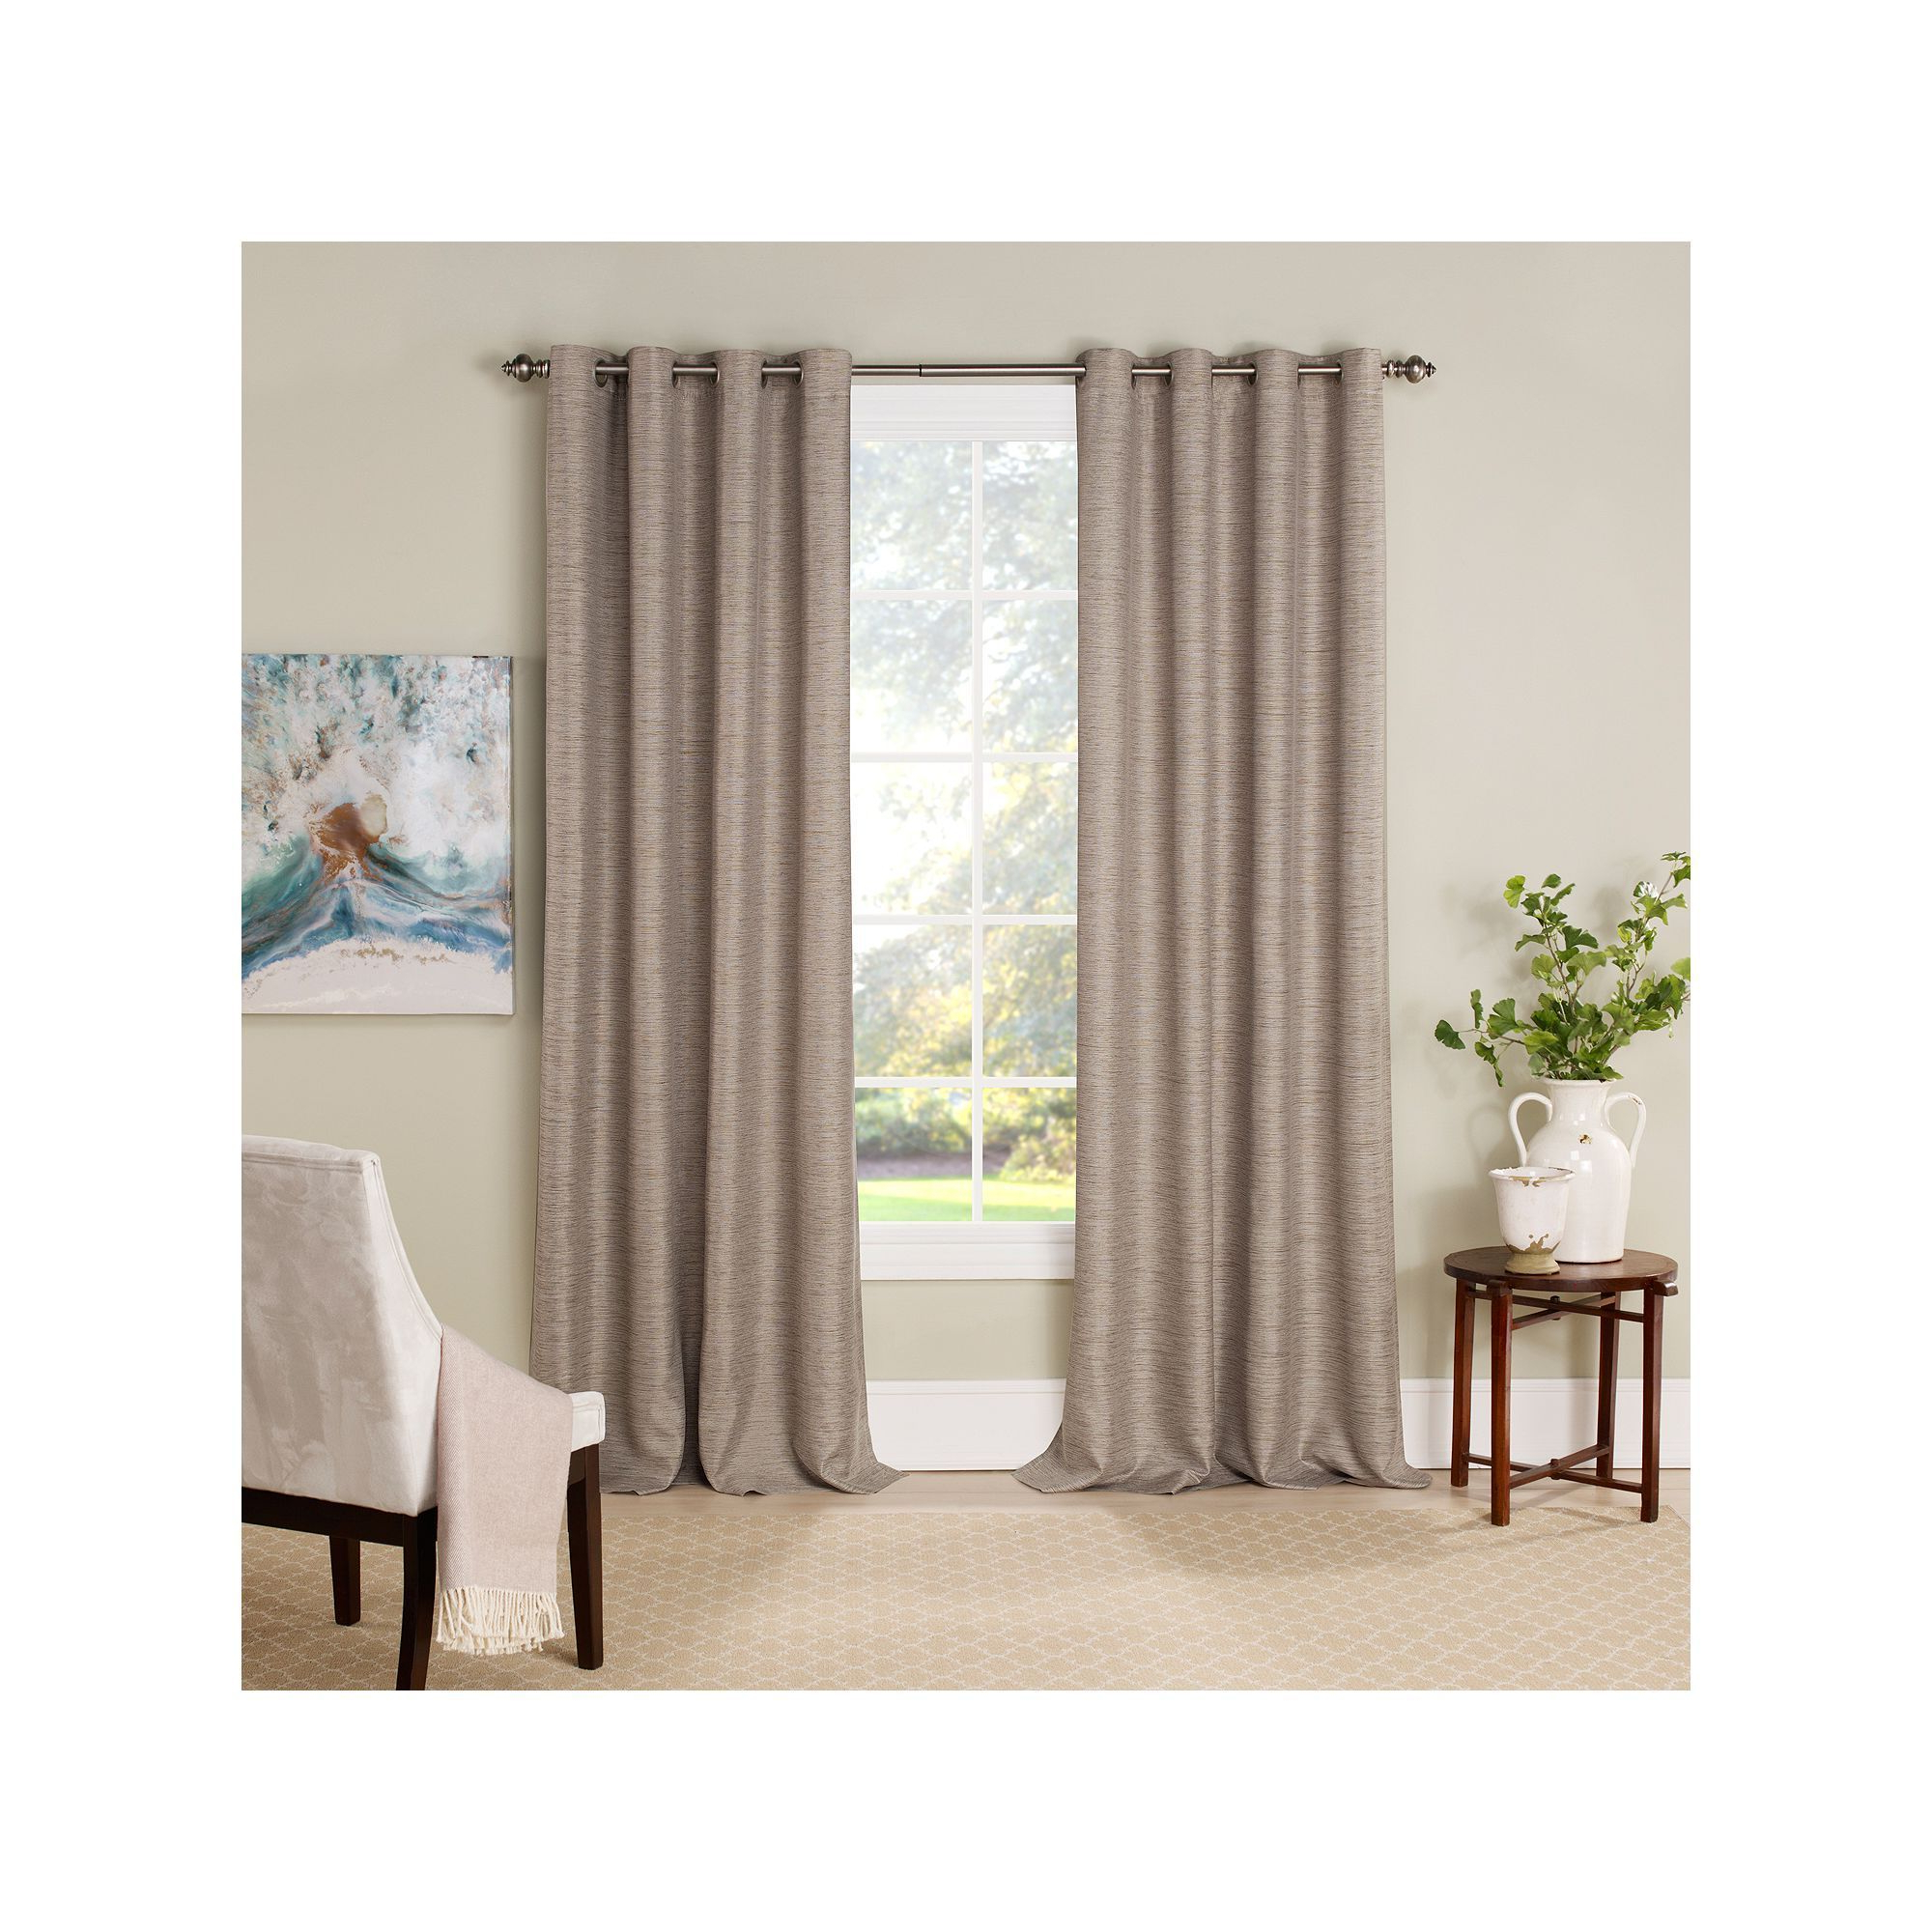 Eclipse Newport Blackout Curtain Panels Regarding 2020 Eclipse Newport Blackout Window Curtain, Dark Beige, 52x (View 8 of 20)